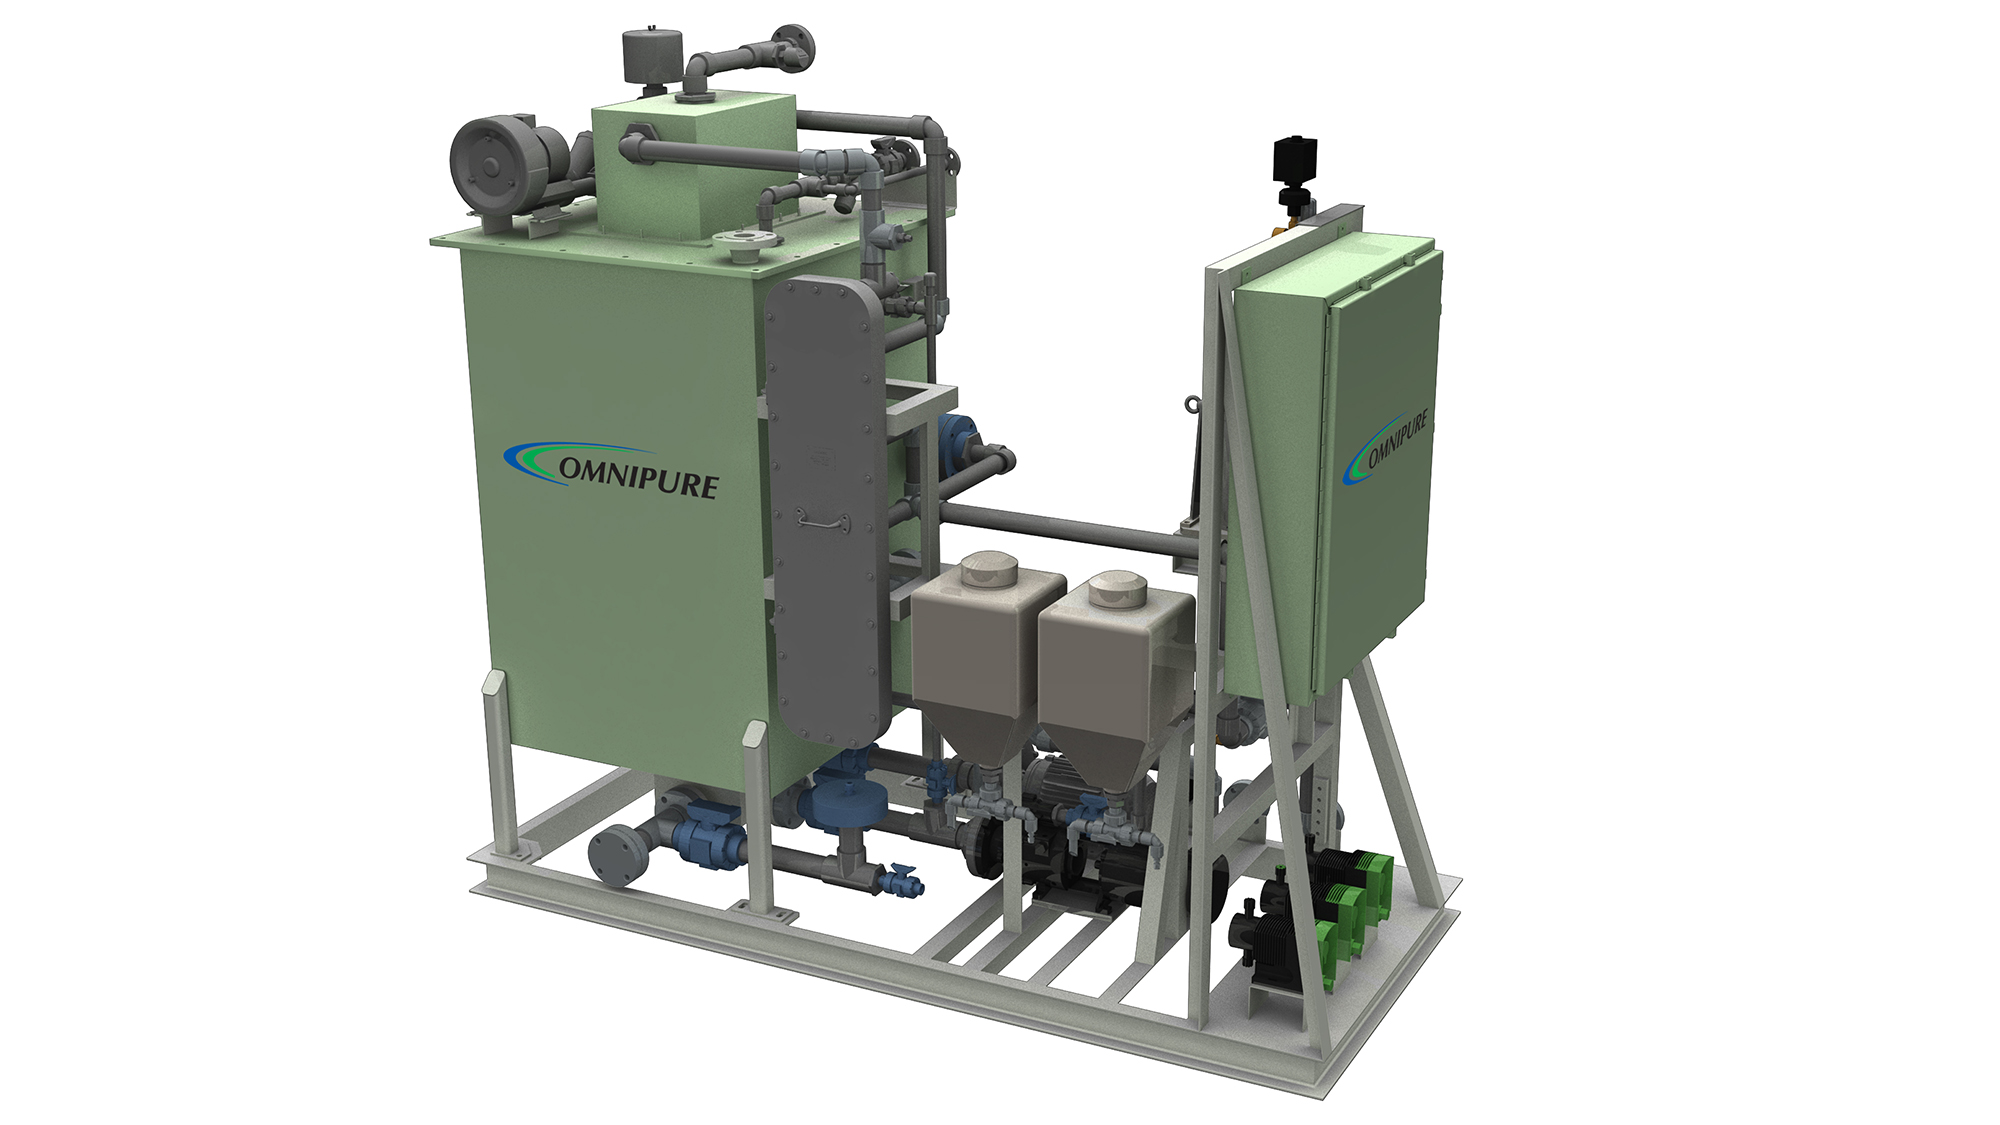 De Nora OMNIPURE™ Series 64 G2 Ex Marine Sewage Treatment Systems Achieve IMO and BV Dual Rated Hazardous Area Type Certification